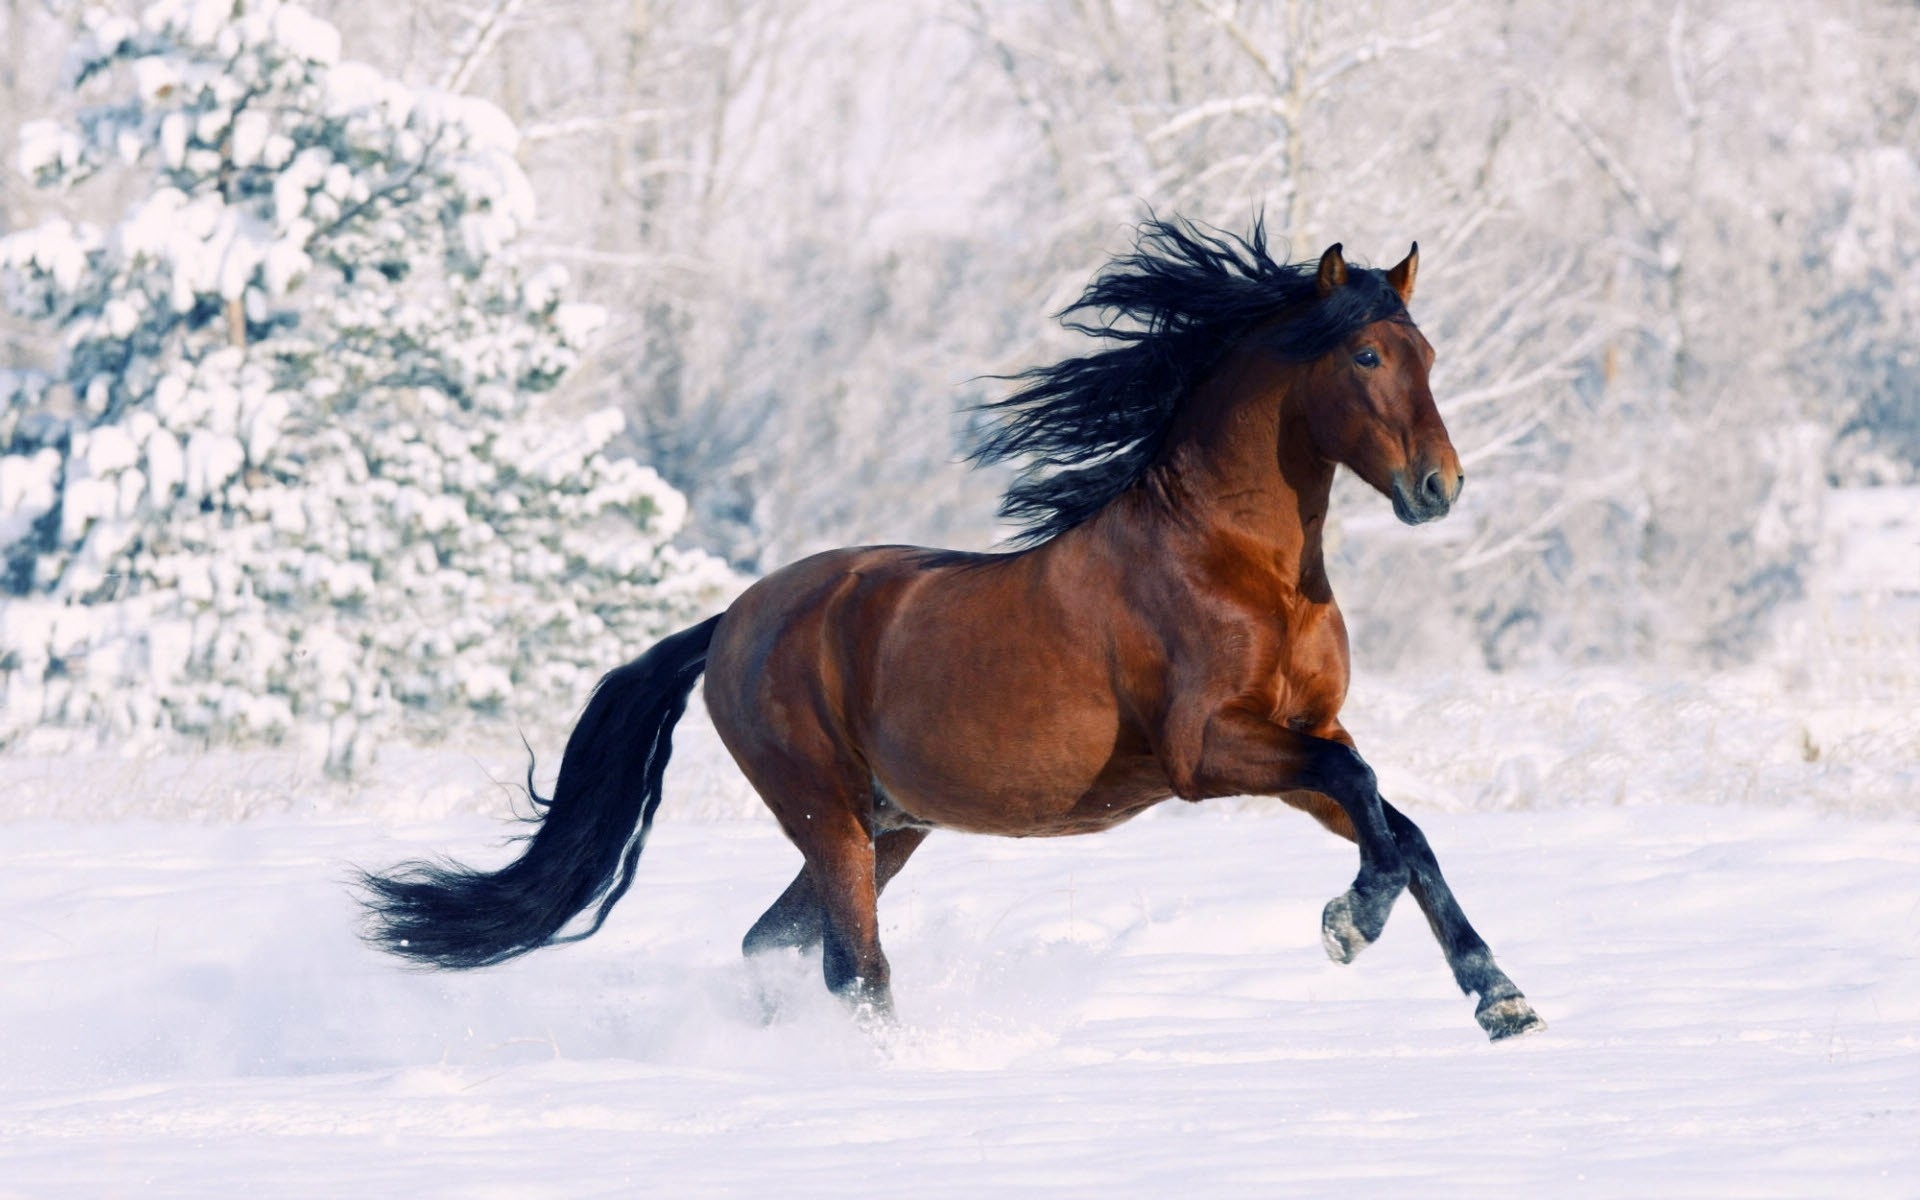 Horse Running Through Snow 138438 Hd Wallpaper